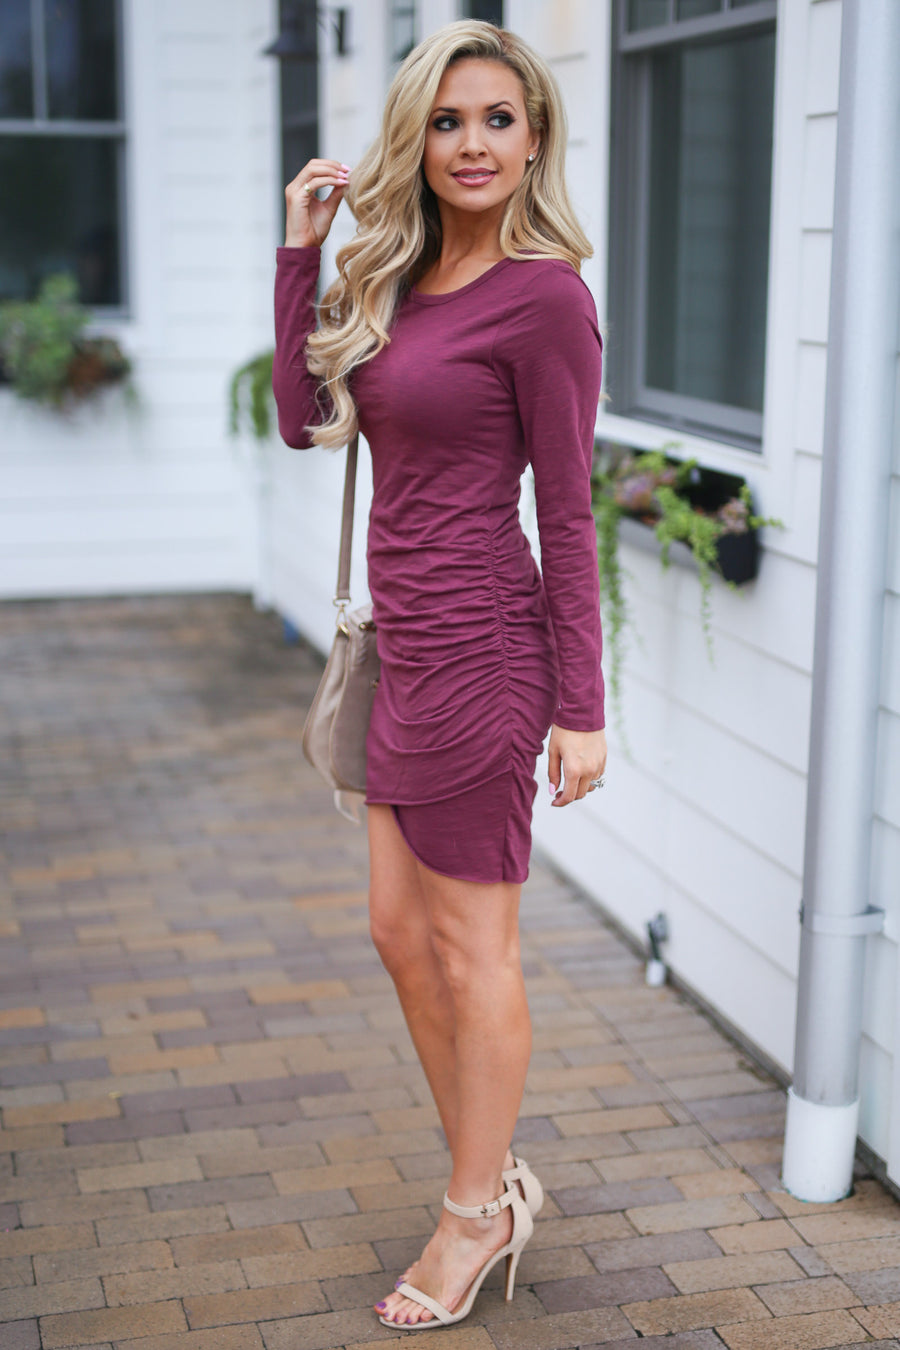 Nothing Better Long Sleeve Dress - Merlot women's trendy ruched round neckline fitted dress, best seller, Closet Candy Boutique 1